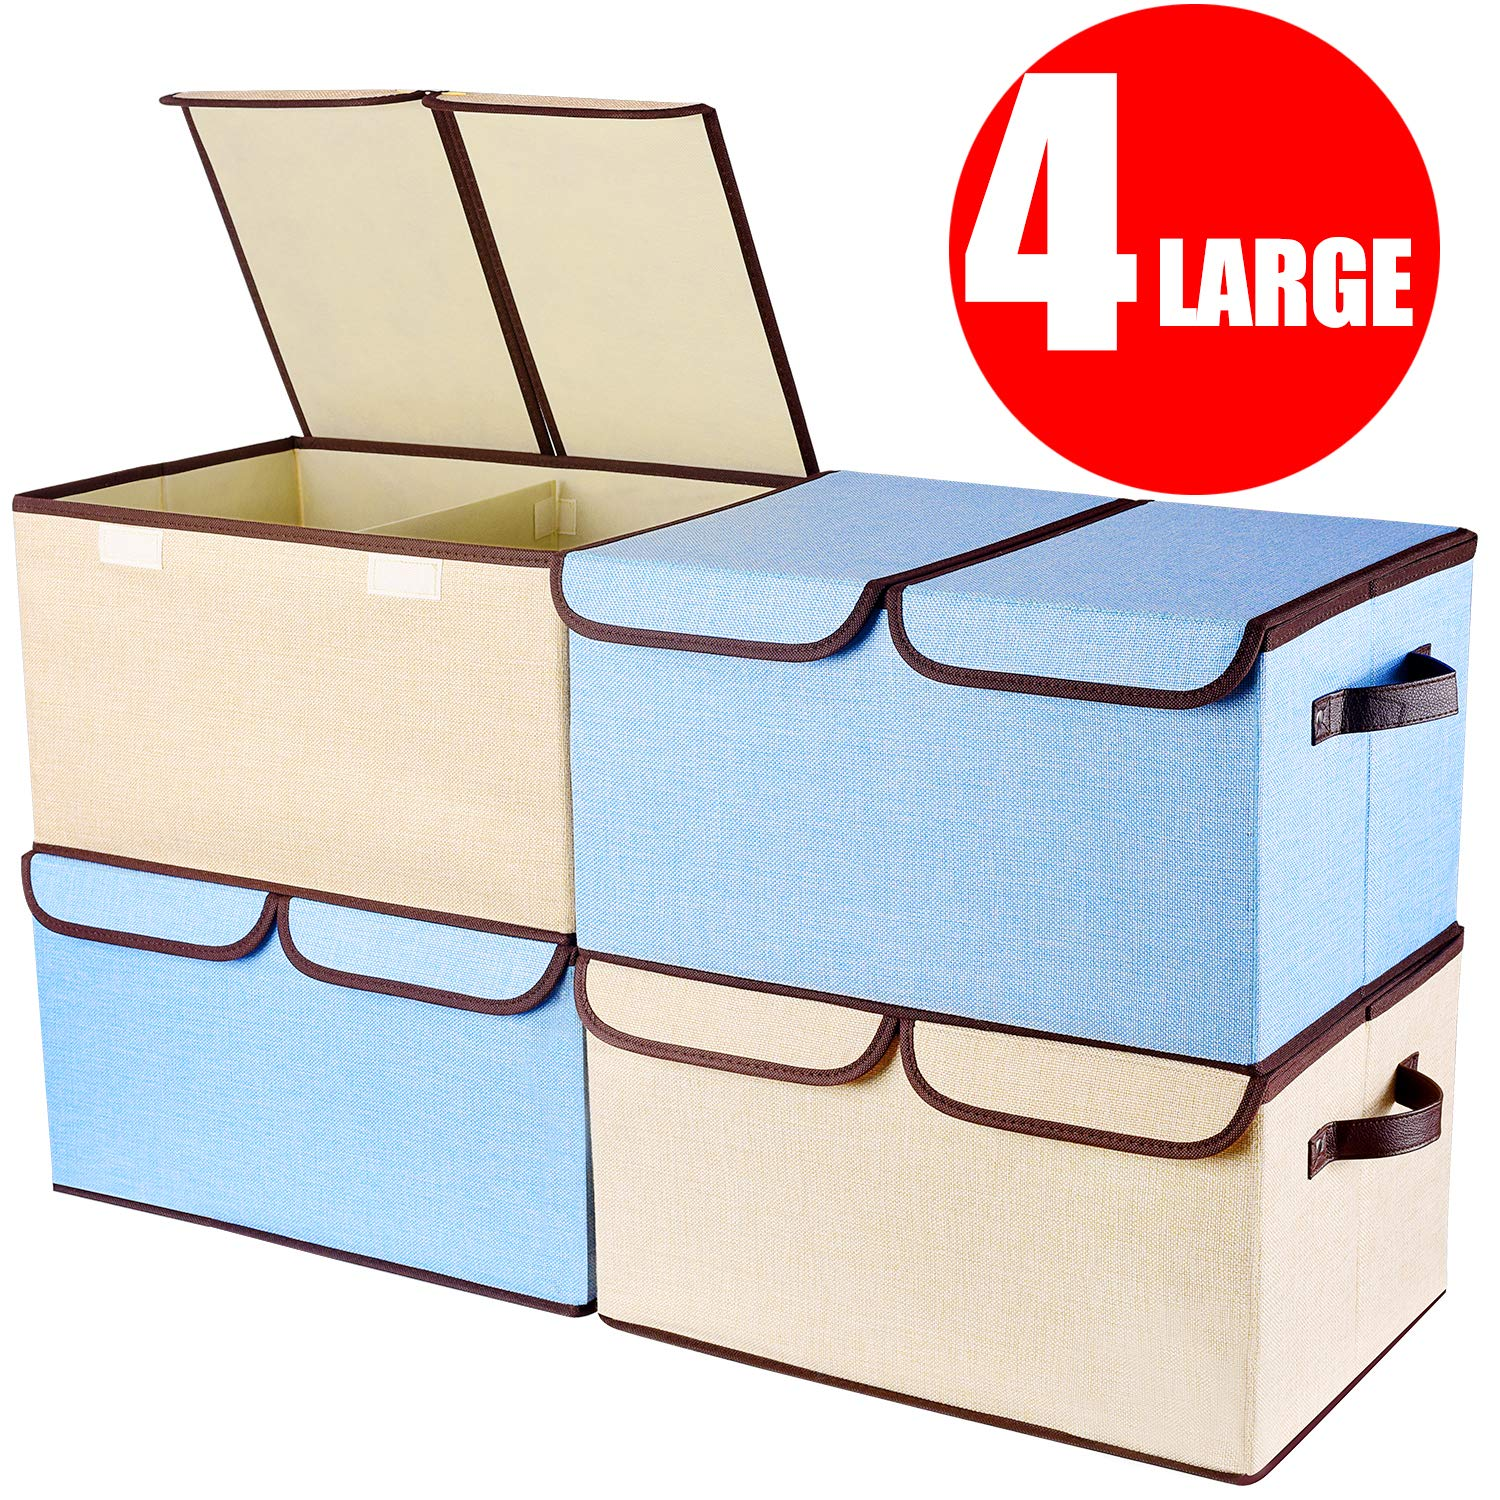 senbowe Storage Bins, Set of [3-Size] Foldable Storage Cubes Box with Lids and Handles, Collapsible Storage Basket Containers Organizer with Linen Fabric for Home, Office, Nursery, Closet, Bedroom